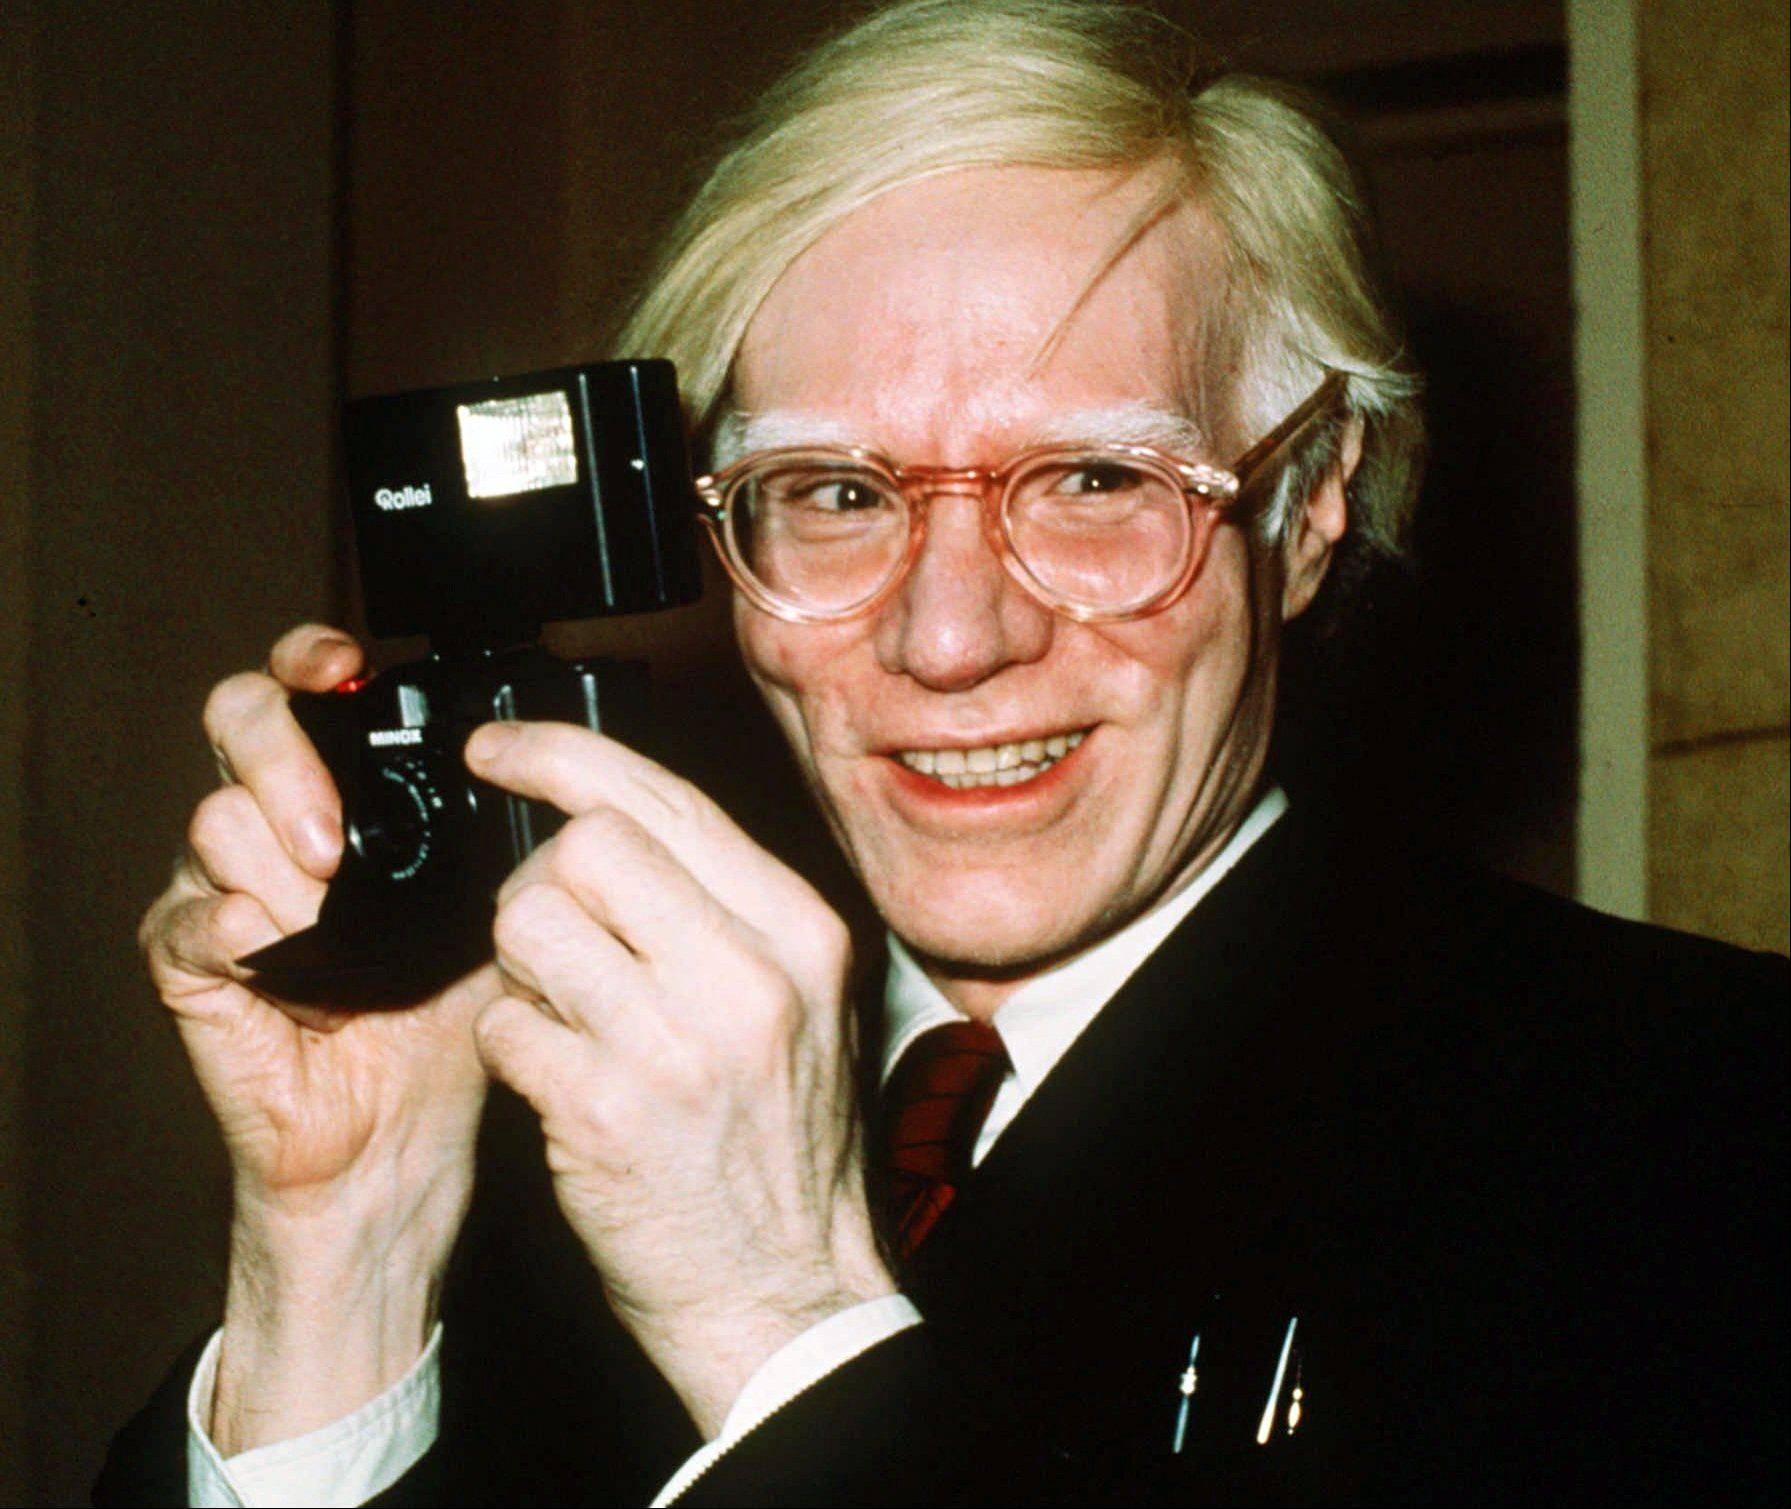 The Andy Warhol Museum is launching a live video feed from the pop artist's gravesite to honor his 85th birthday. Warhol's 85th birthday would have been Tuesday. He died in 1987.